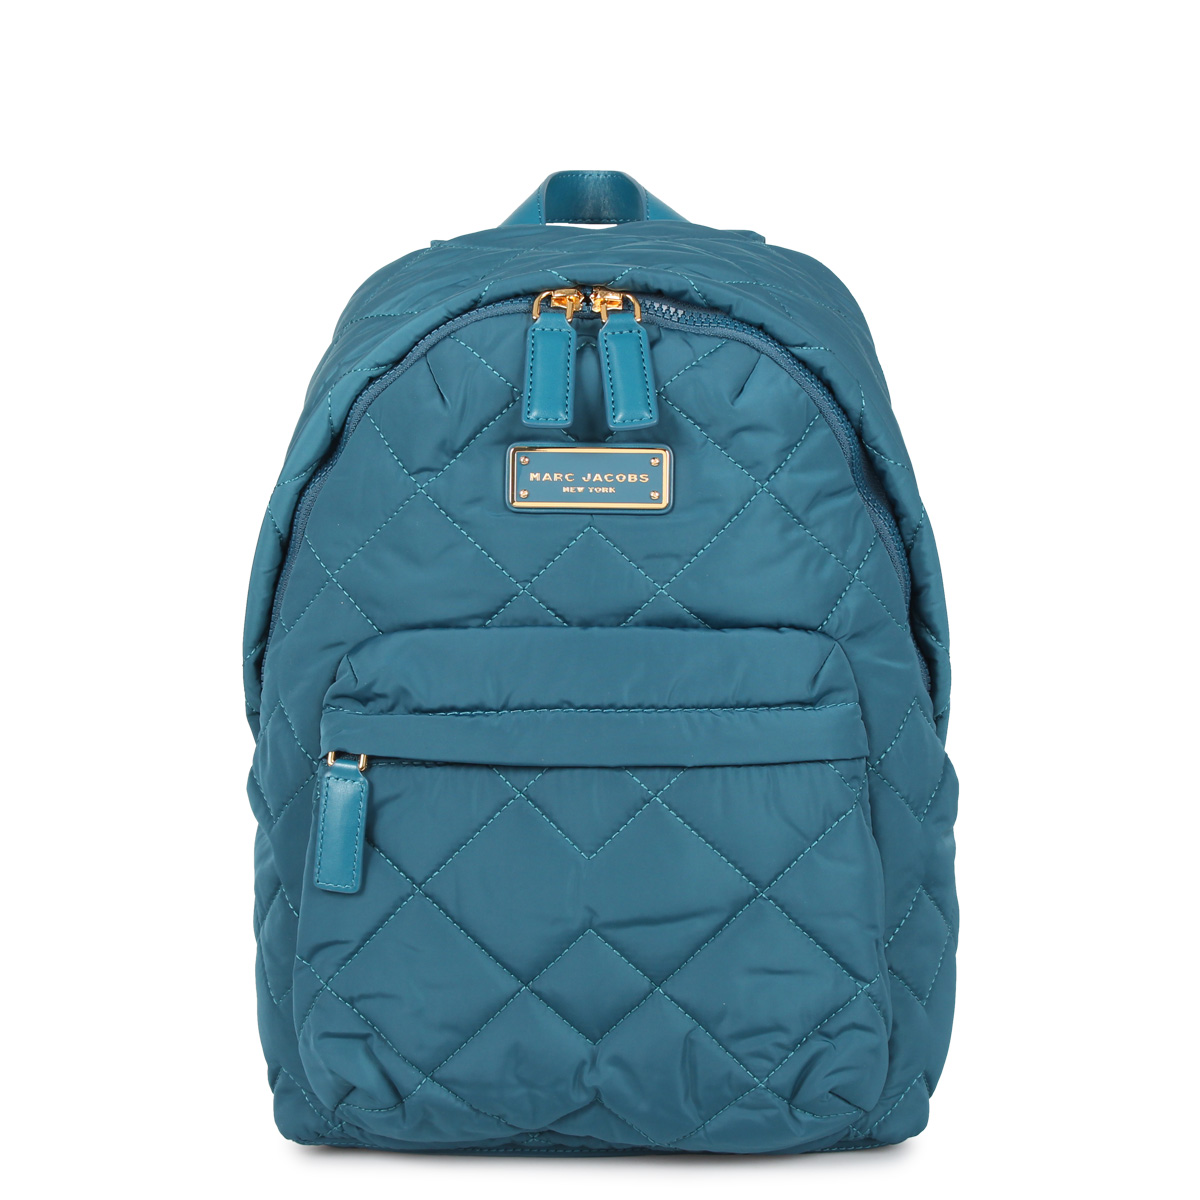 MARC BY MARC JACOBS m0011321-448マークバイマークジェイコブス リュックサック バックパック deep teal ブルー M0011321-448 *ラッピング不可商品*